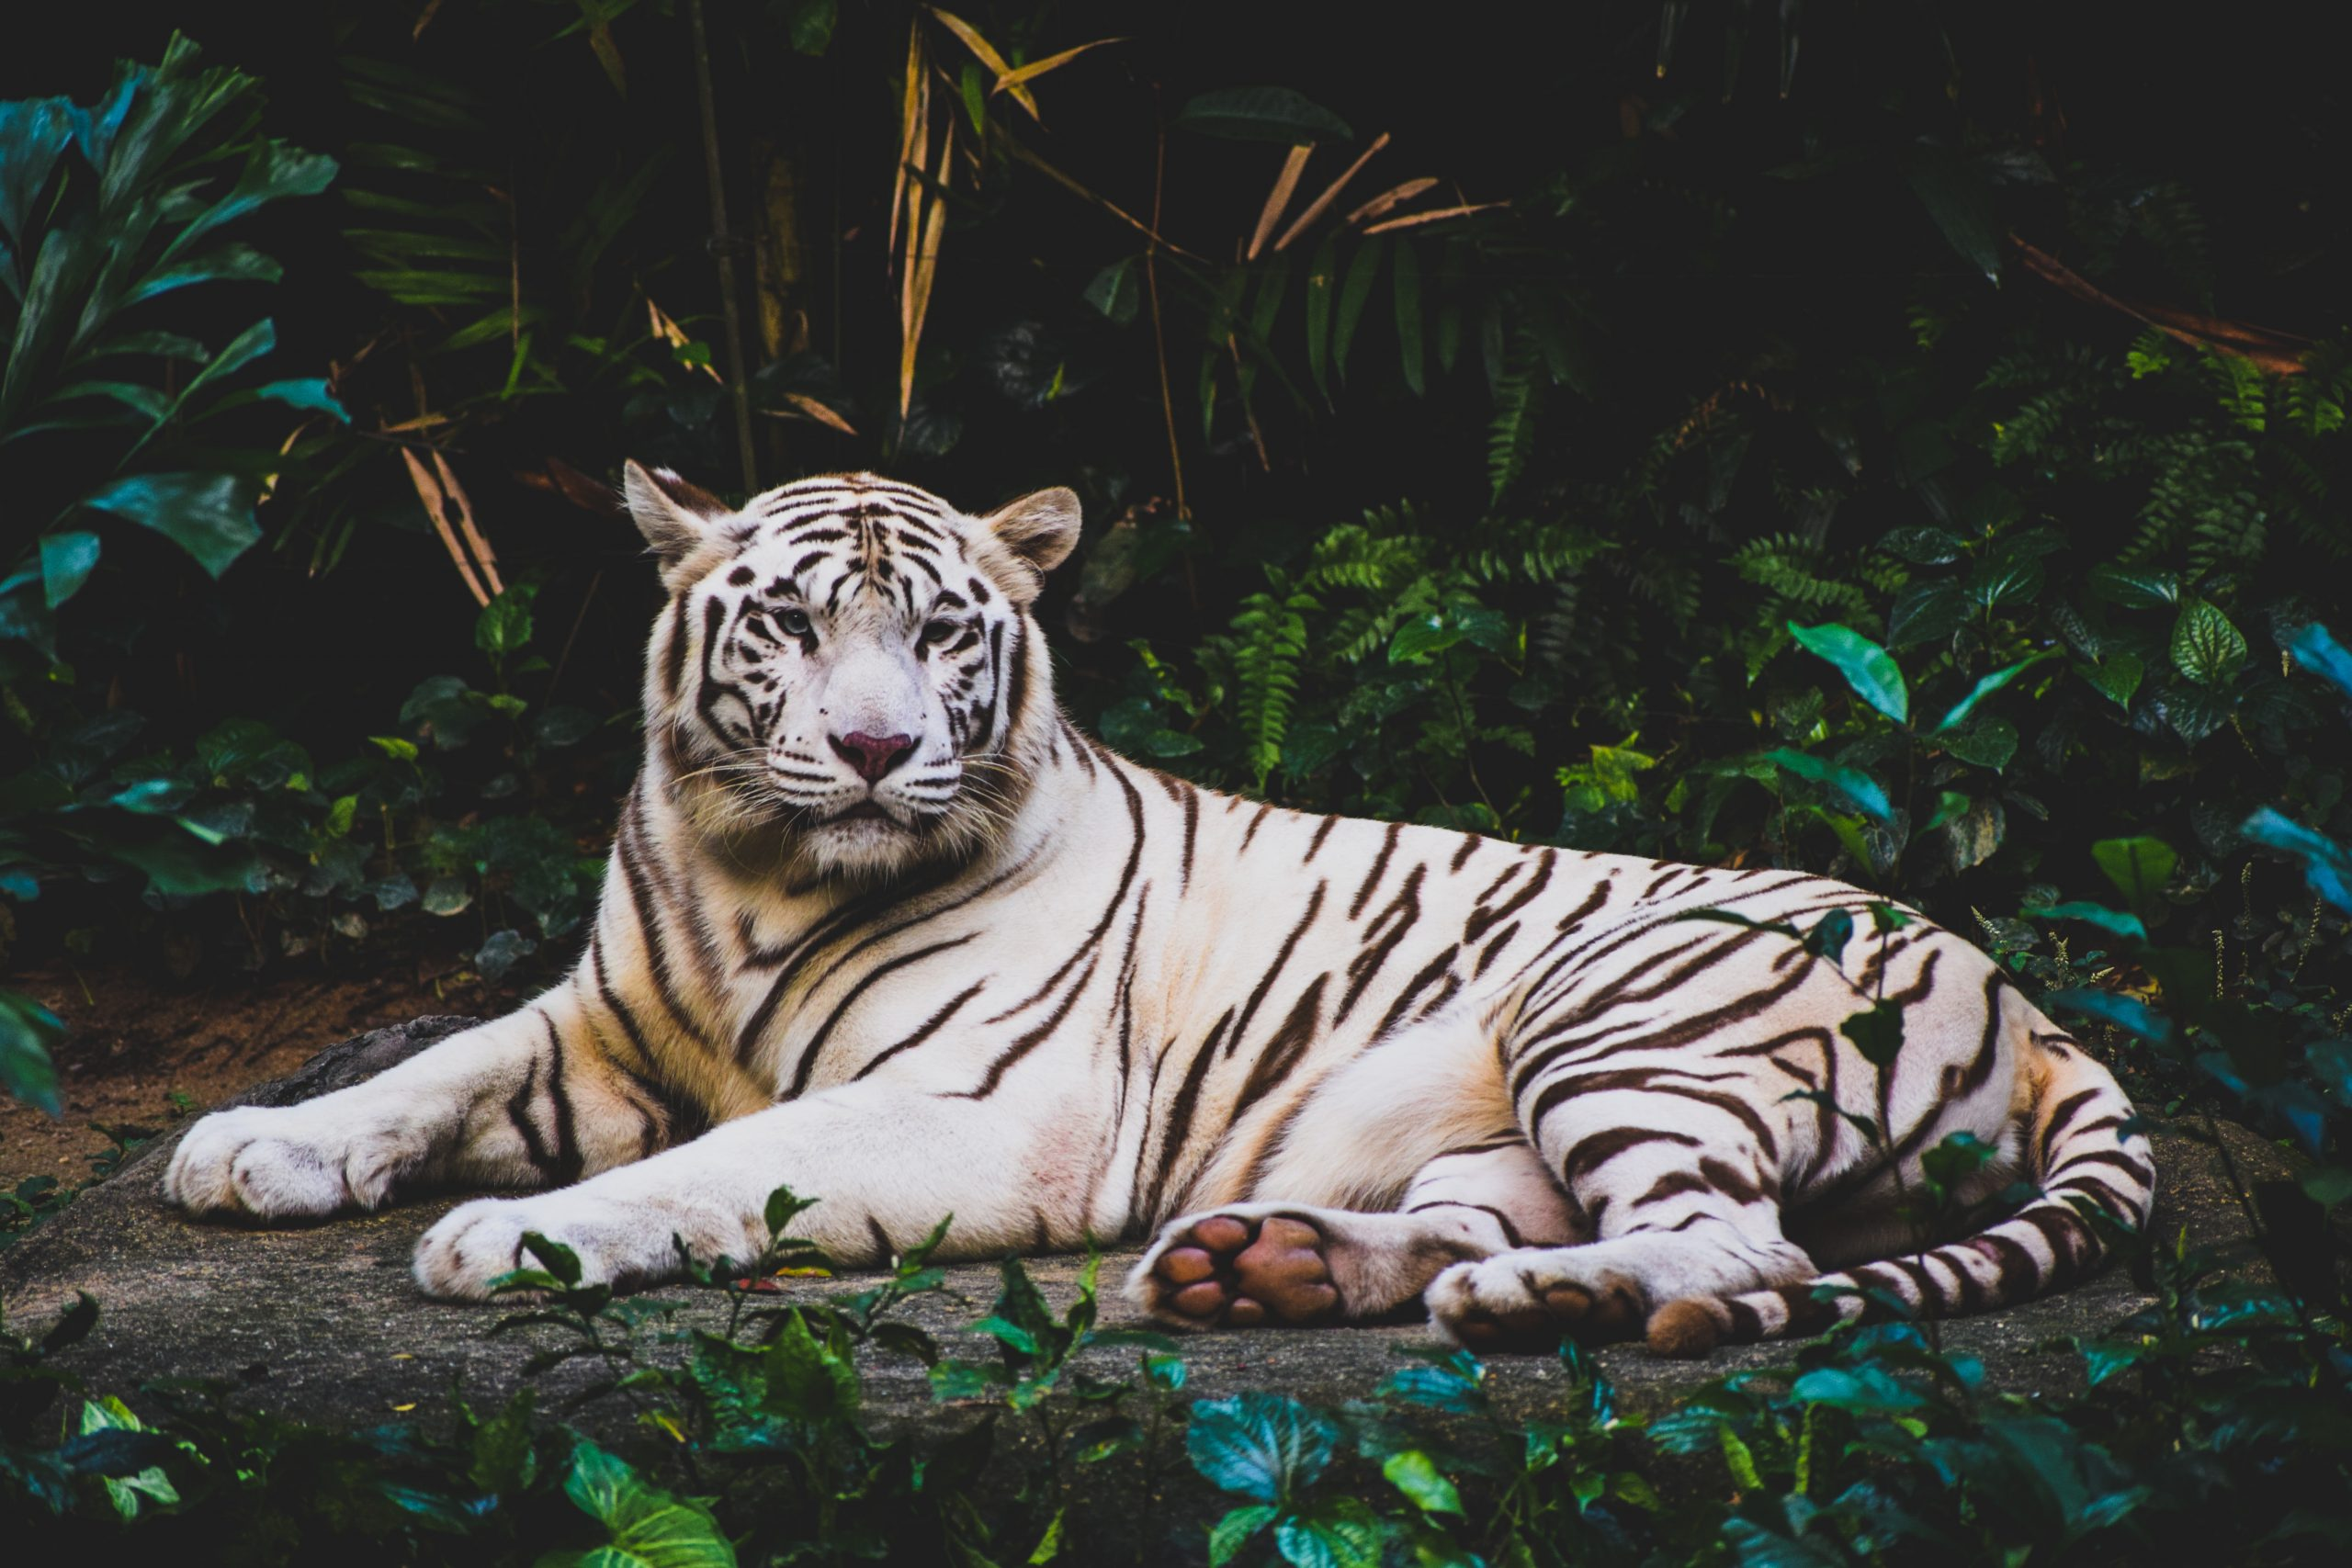 wallpaper Albino tiger lying on ground at nighttime